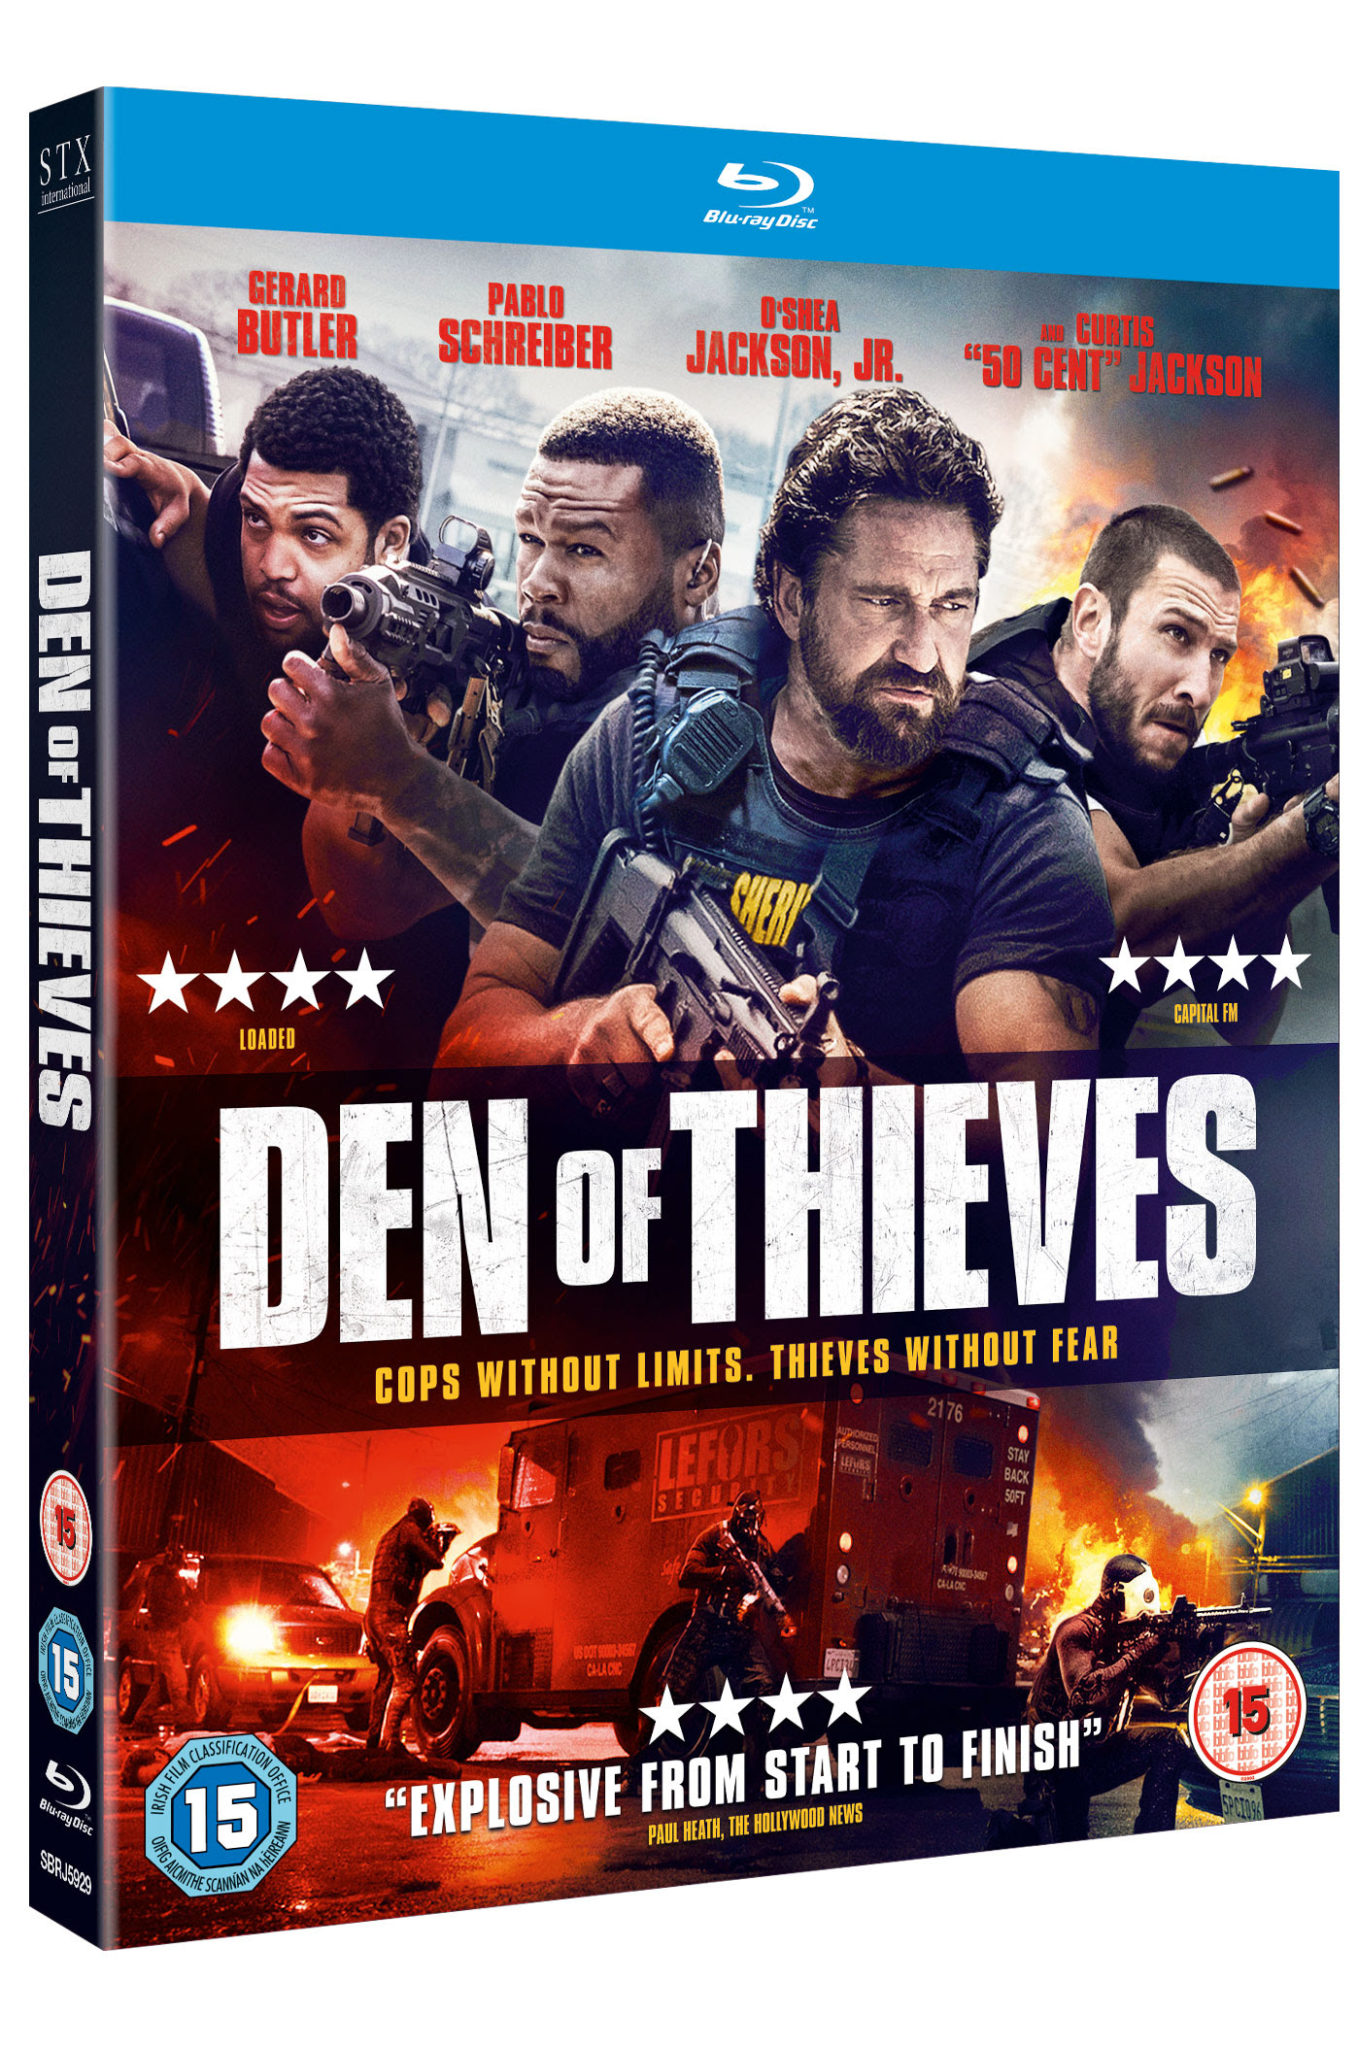 DEN OF THIEVES   Available on Digital Download 28 May and on Blu-ray™ & DVD on 4 June